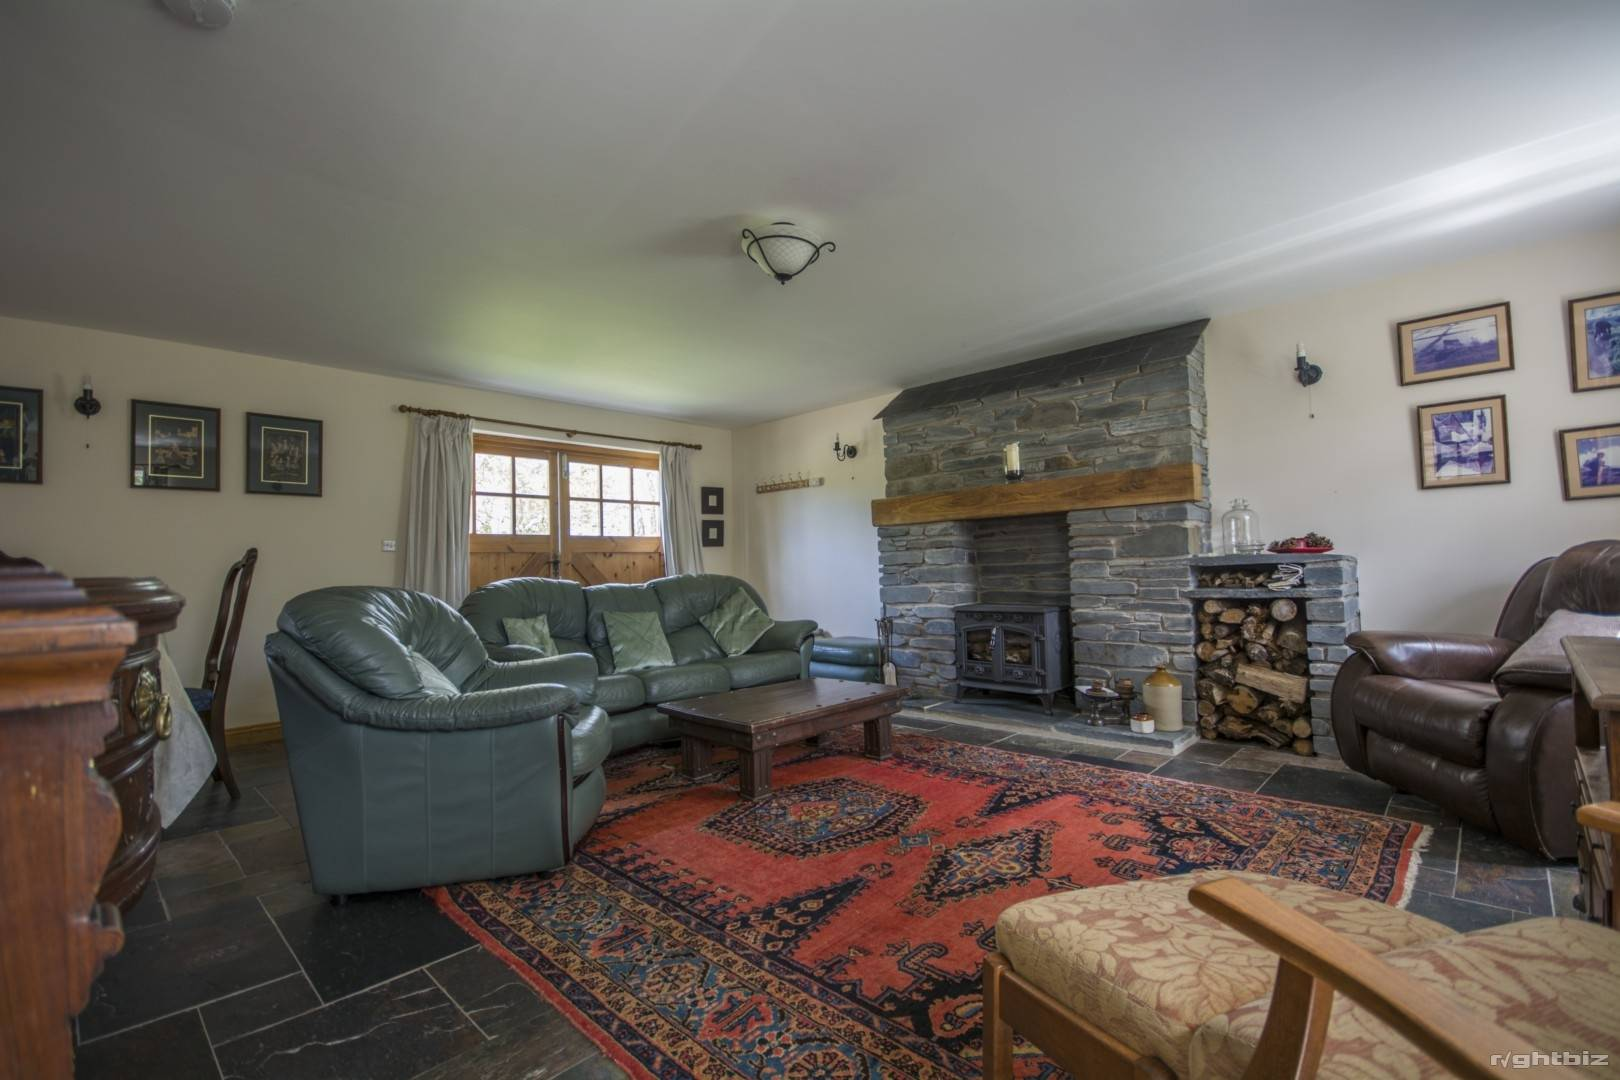 HOLIDAY LETTING BUSINESS/ LIVERY POTENTIAL + SMALLHOLDING + STABLES SET IN 10 ACRES - PEMBROKESHIRE - Image 9